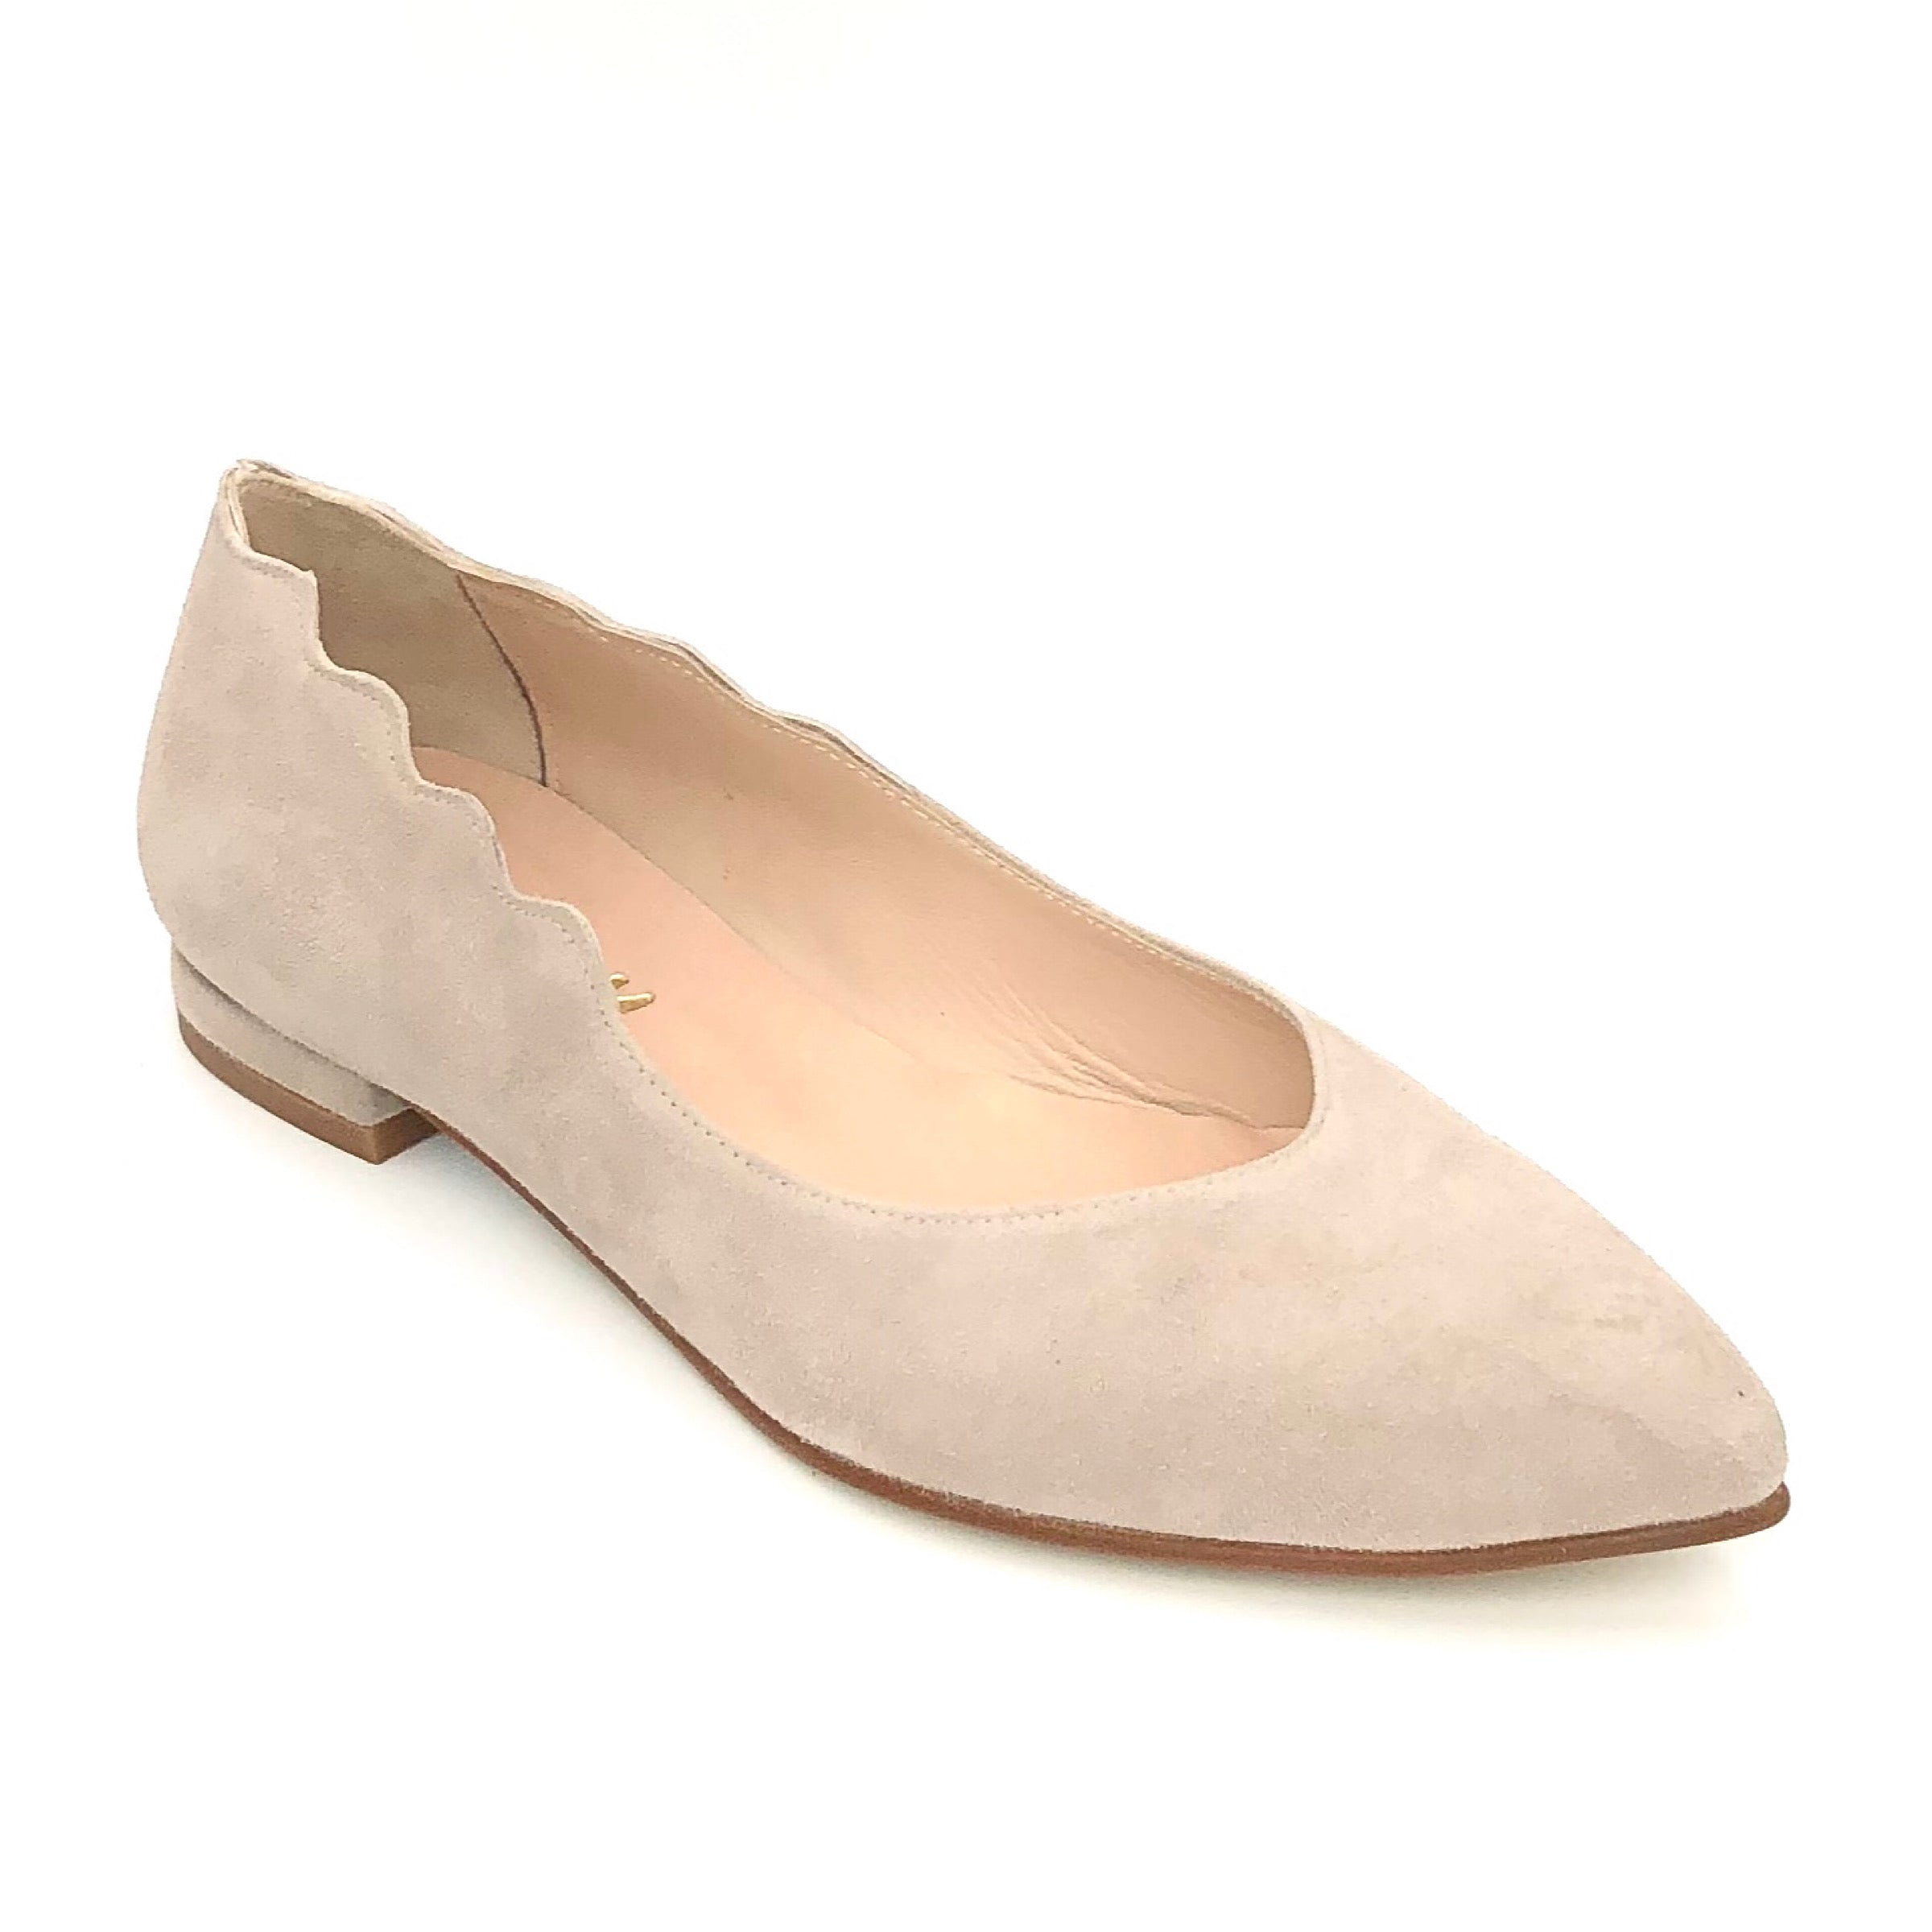 French Sole Farmington - The Almond Flat with Scallop Edge in Navy Feminine & fashionable almond toe flat with scallop top-line & low heel. Suede upper, leather lining & leather sole.